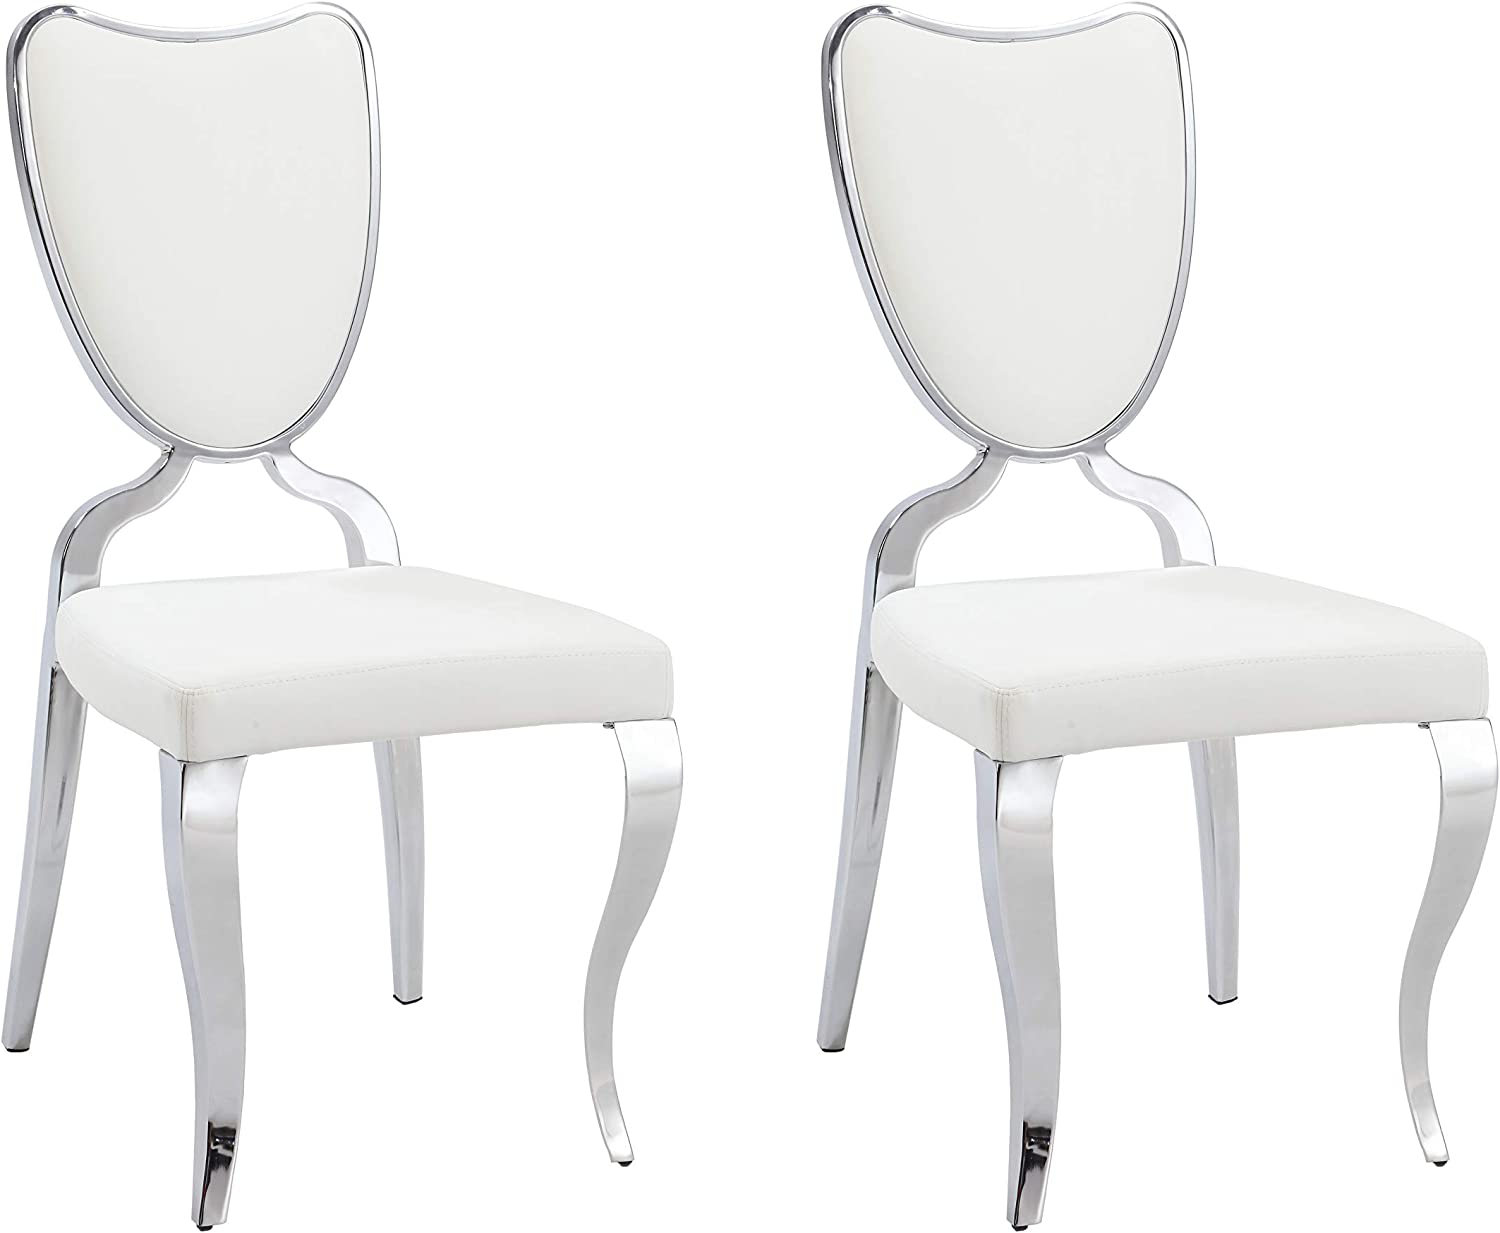 MILAN Laila Heart Back Cabriole Designed Legs Side Chair (Set of 2), Chrome/White